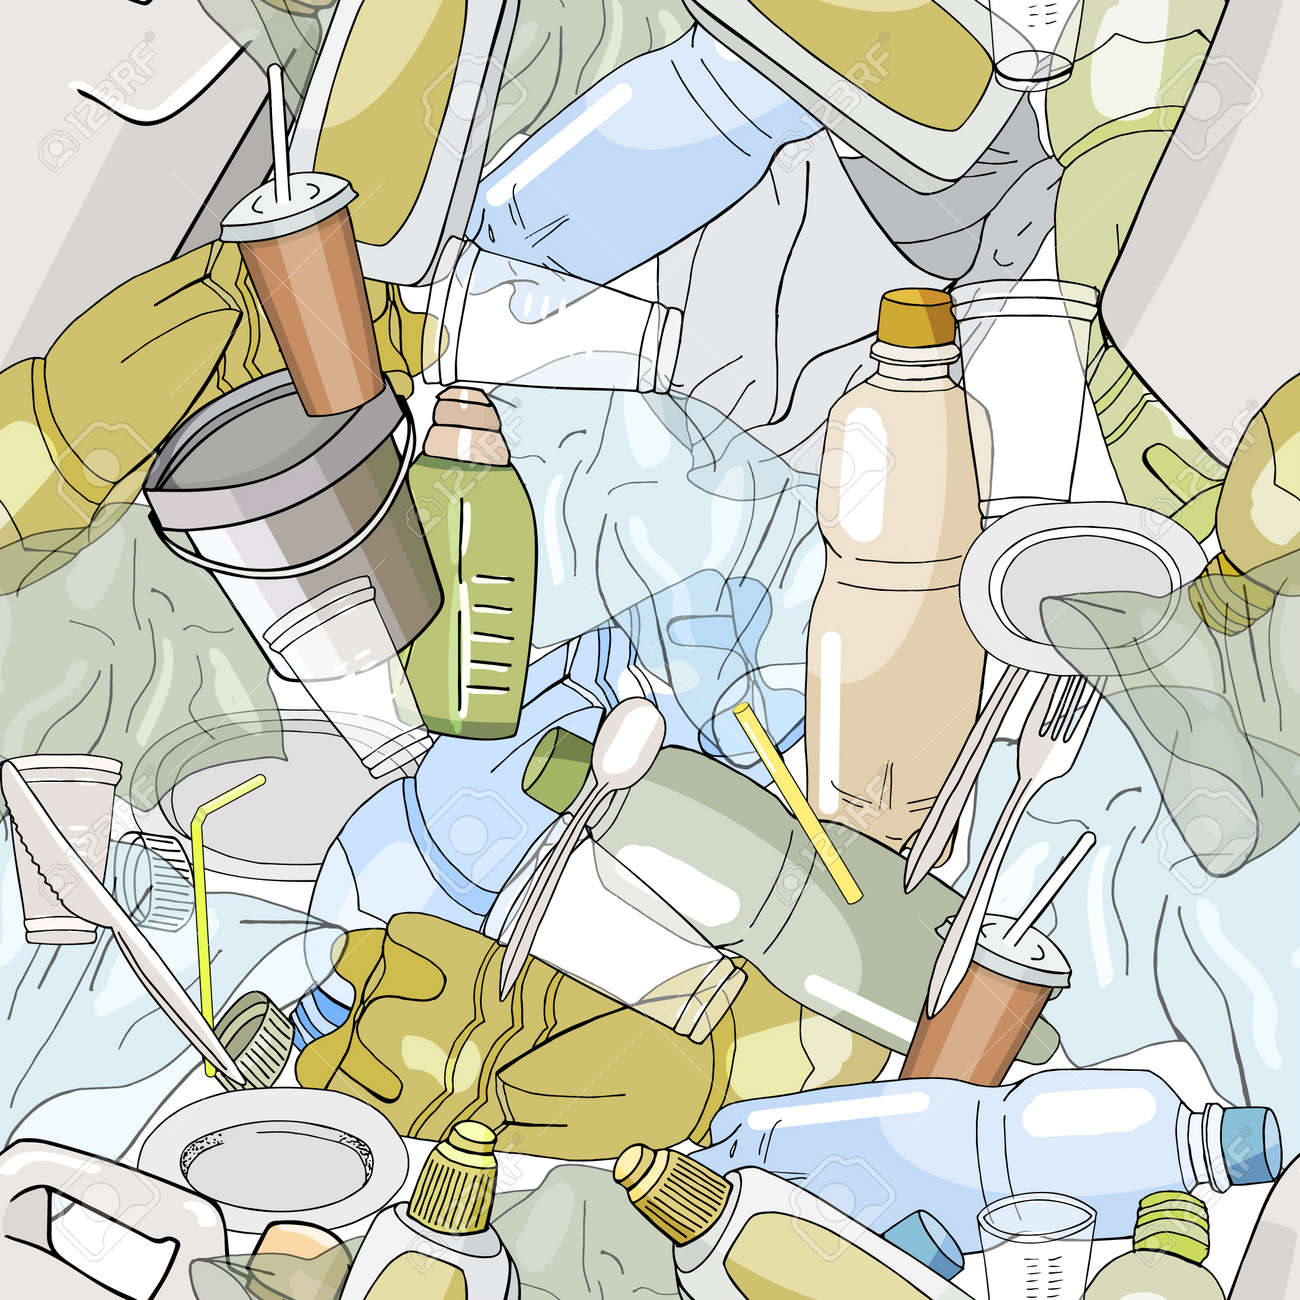 Seamless pattern with different kinds of plastic garbage. The concept of ecology and World Cleanup Day. - 160622811